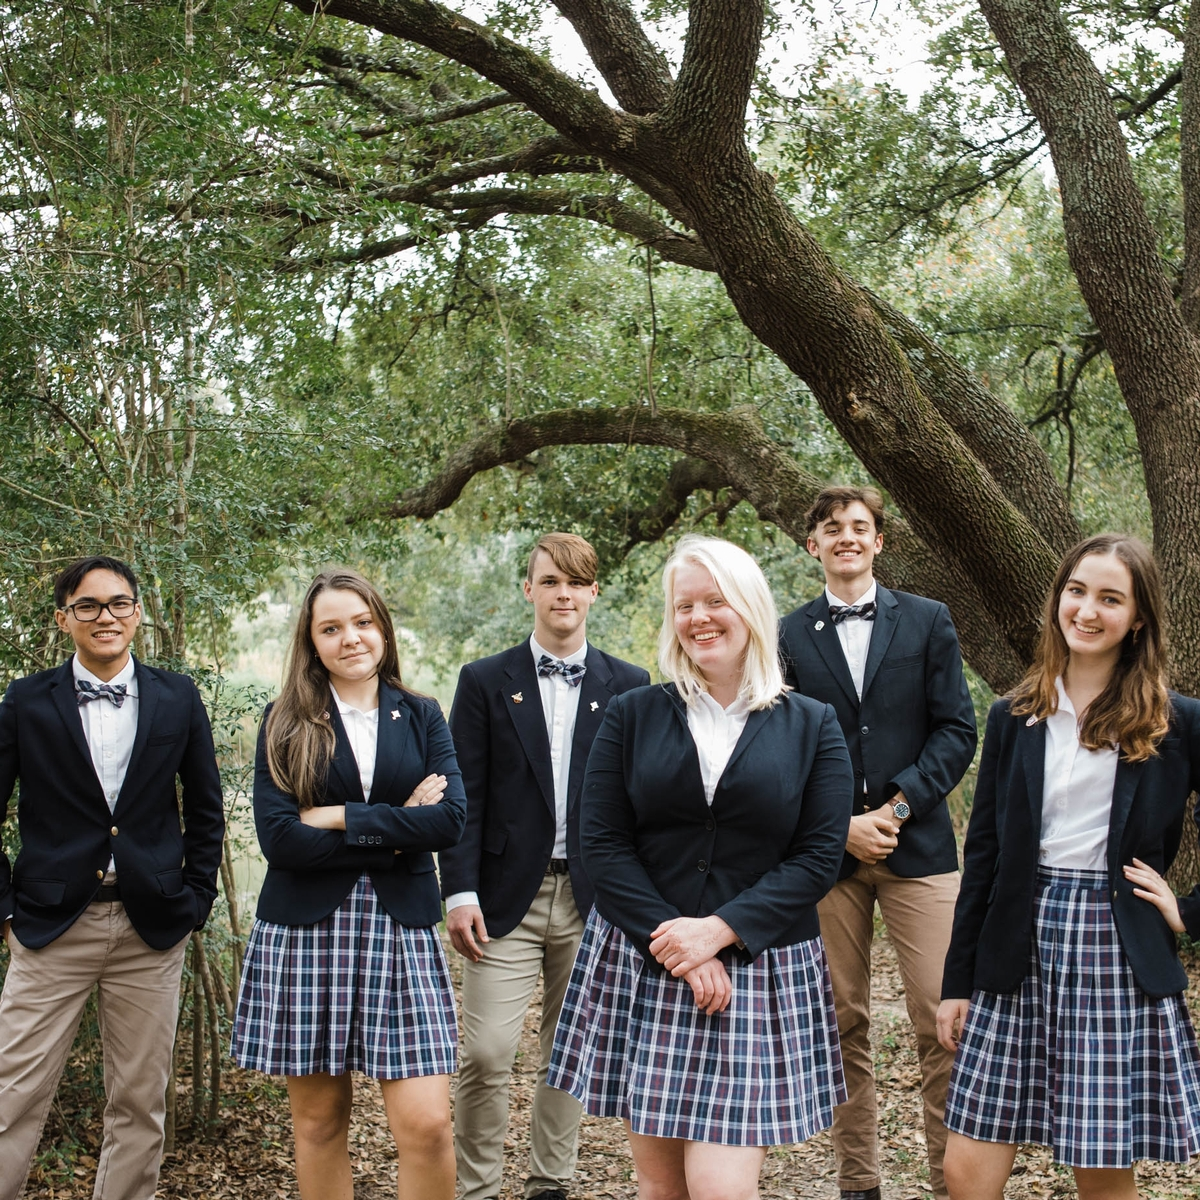 some of the Class of 2021 standing in front of an old oak tree